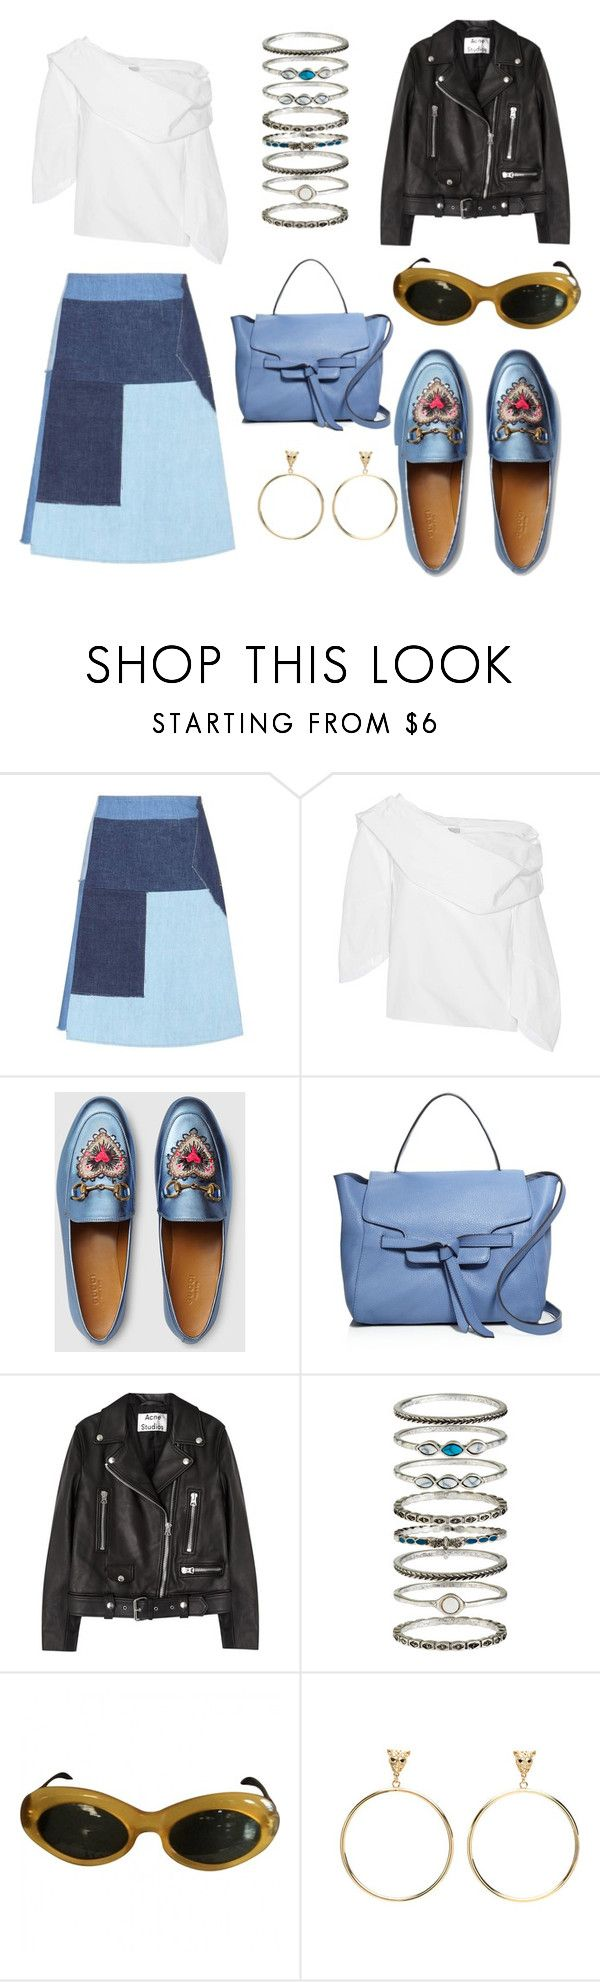 """Untitled #1997"" by elsie-jones ❤ liked on Polyvore featuring M.i.h Jeans, Rosie Assoulin, Gucci, Annabel Ingall, Acne Studios, Accessorize and Yves Saint Laurent"